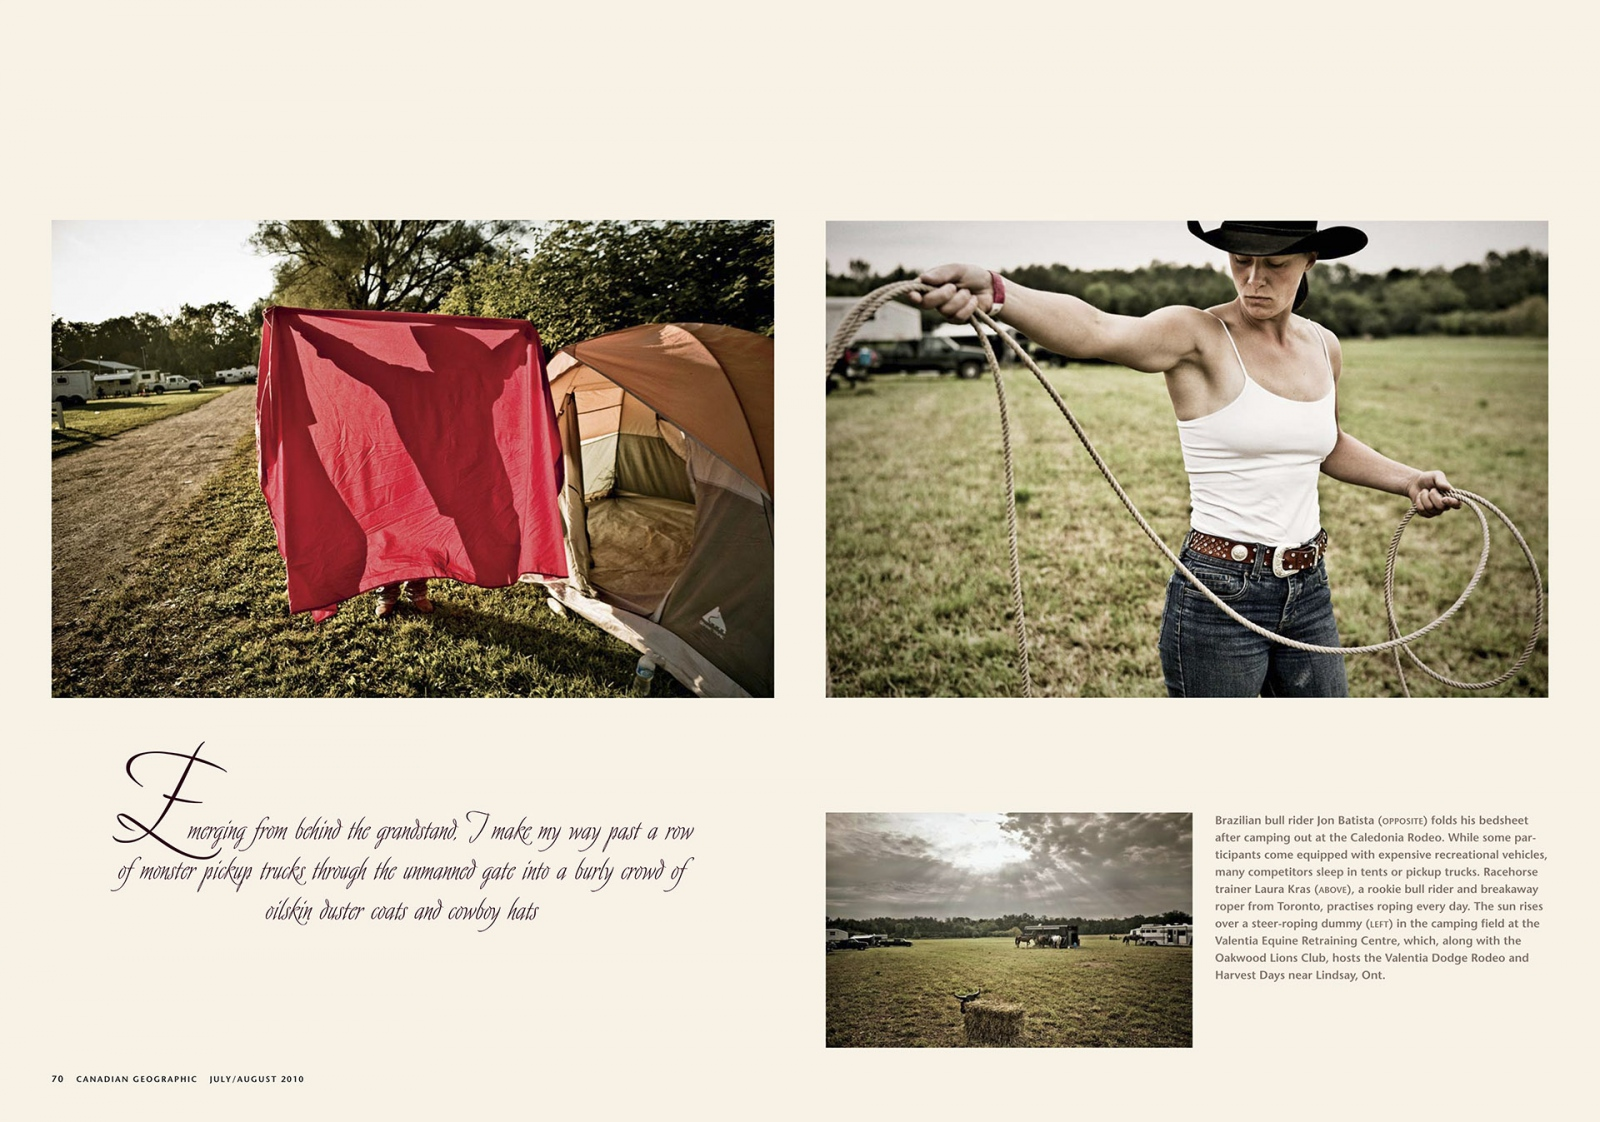 Art and Documentary Photography - Loading 011_CanGeoSemiFinalLayout-Rodeo-6.jpg